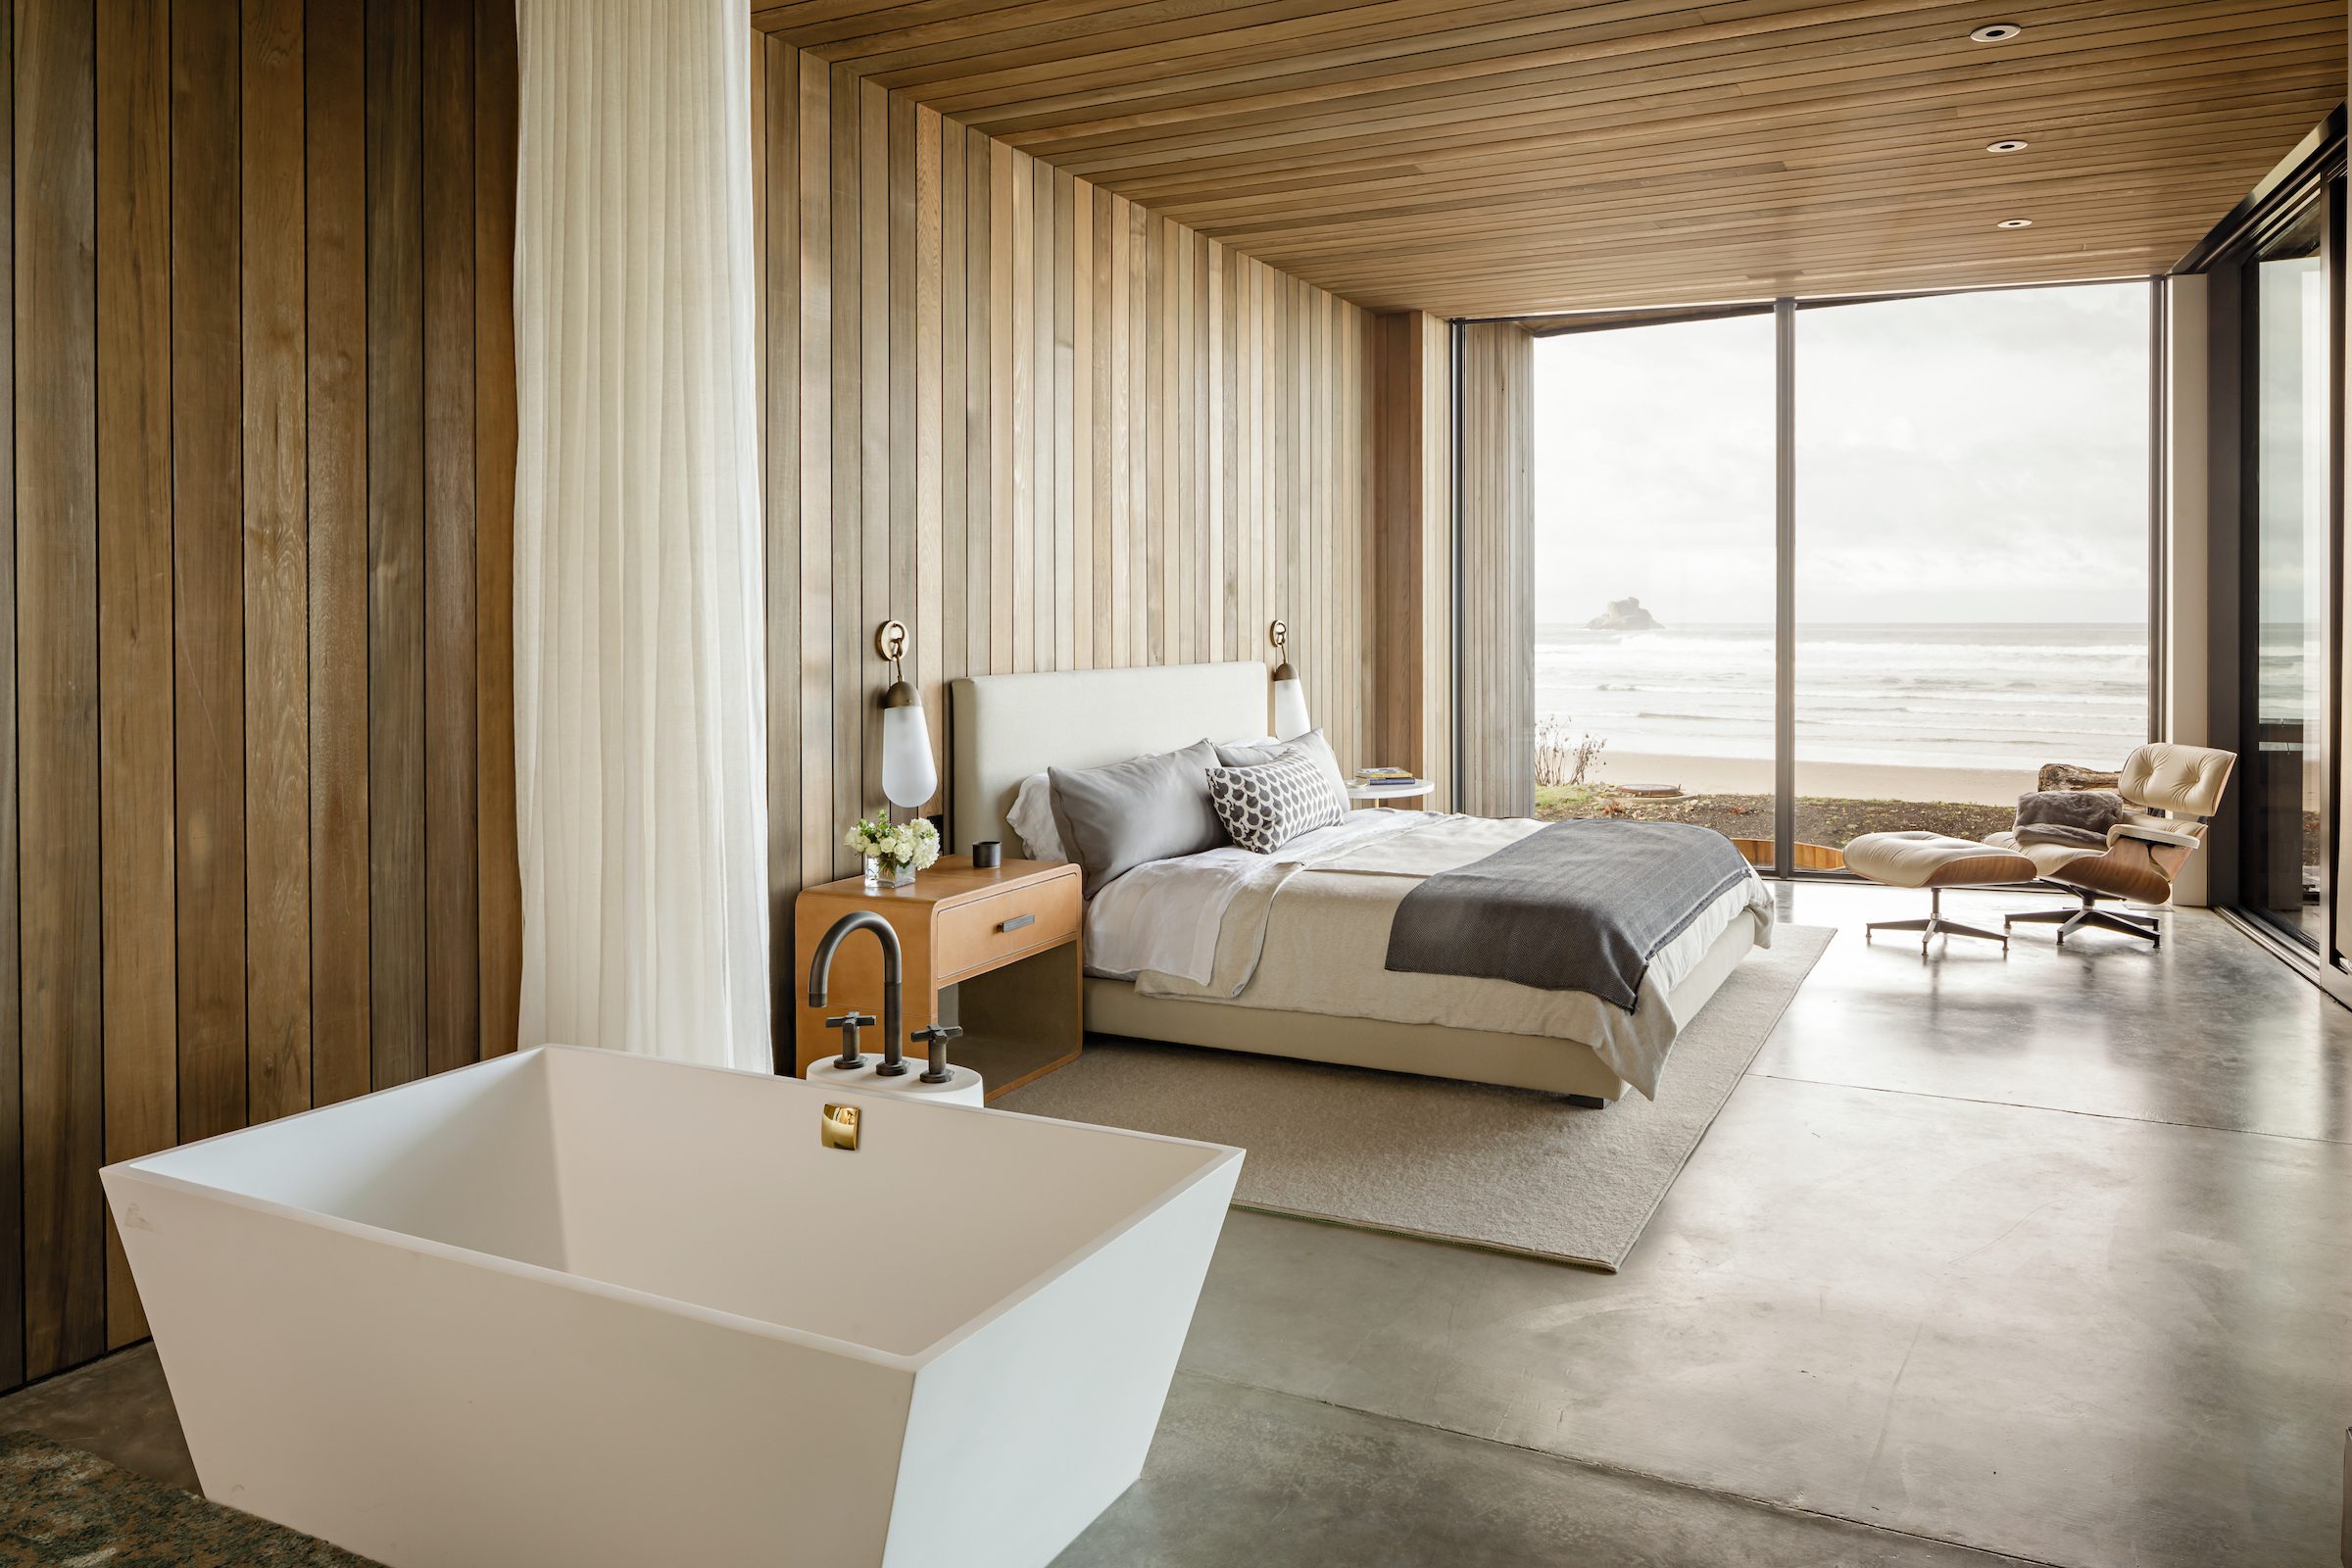 Dwell Magazine - Top 5 Homes of the Week With Cozy BedroomsApril 2018